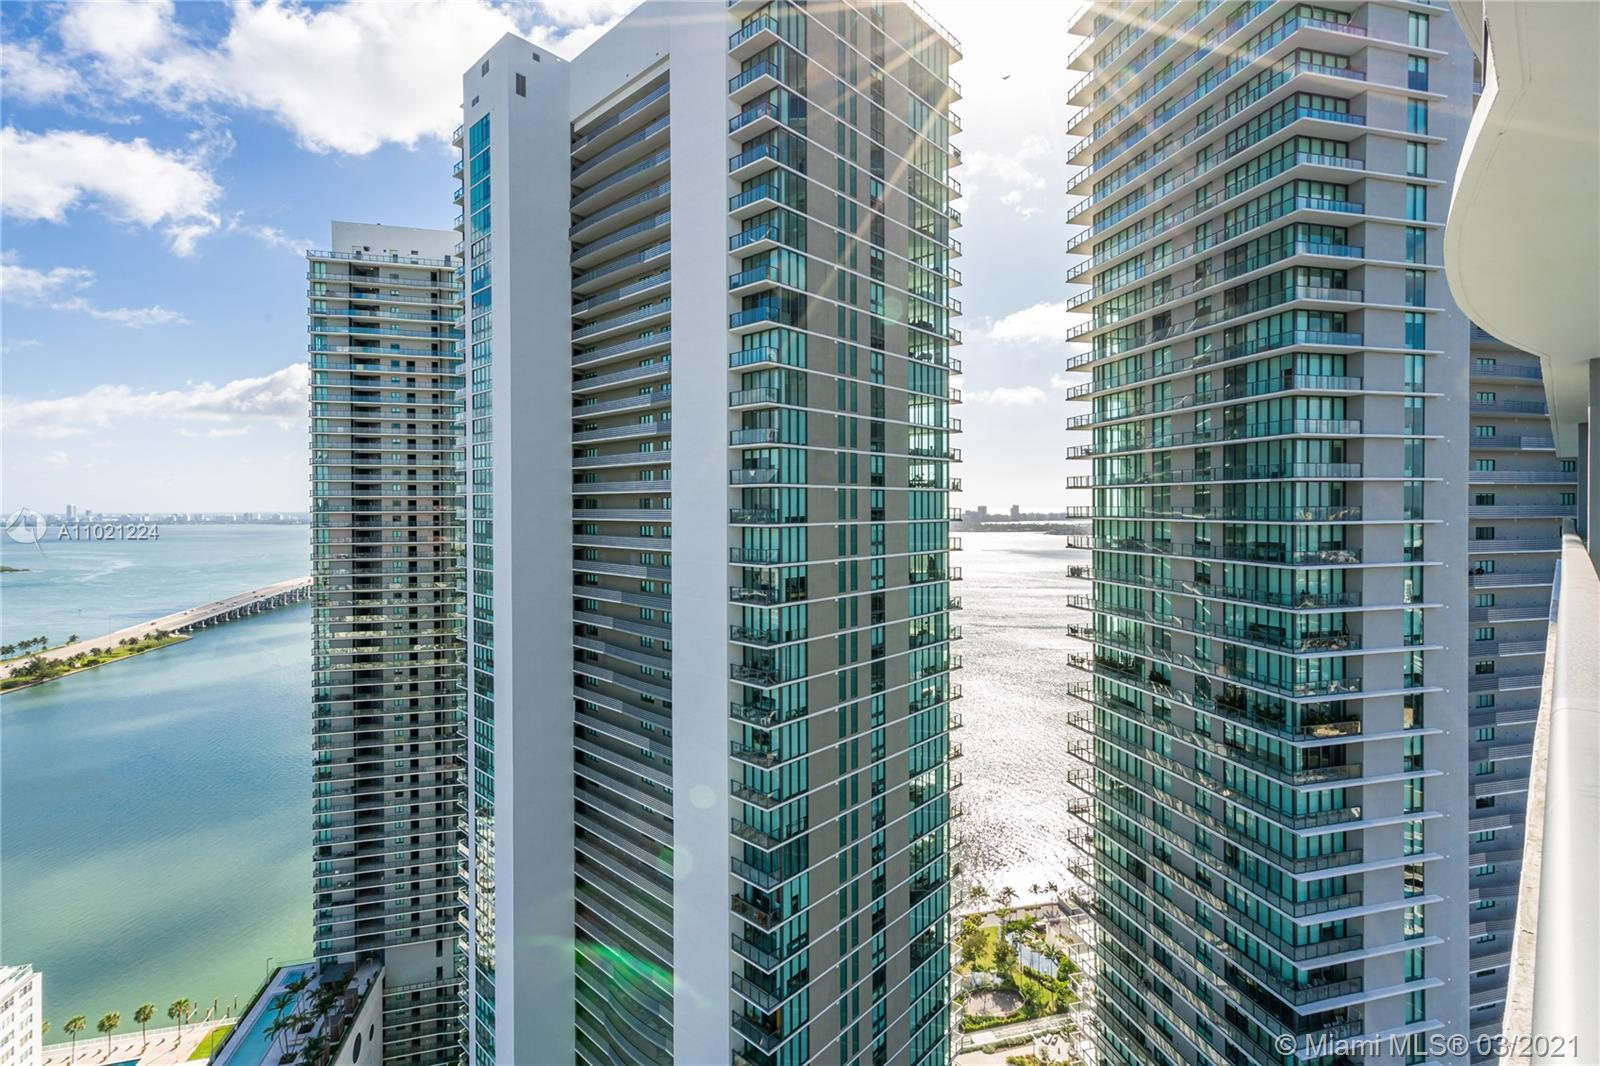 WELCOME TO PARAISO BAYVIEWS - A STUNNING BRAND NEW BUILDING LOCATED IN THE HEART OF MIAMI. THIS WOND